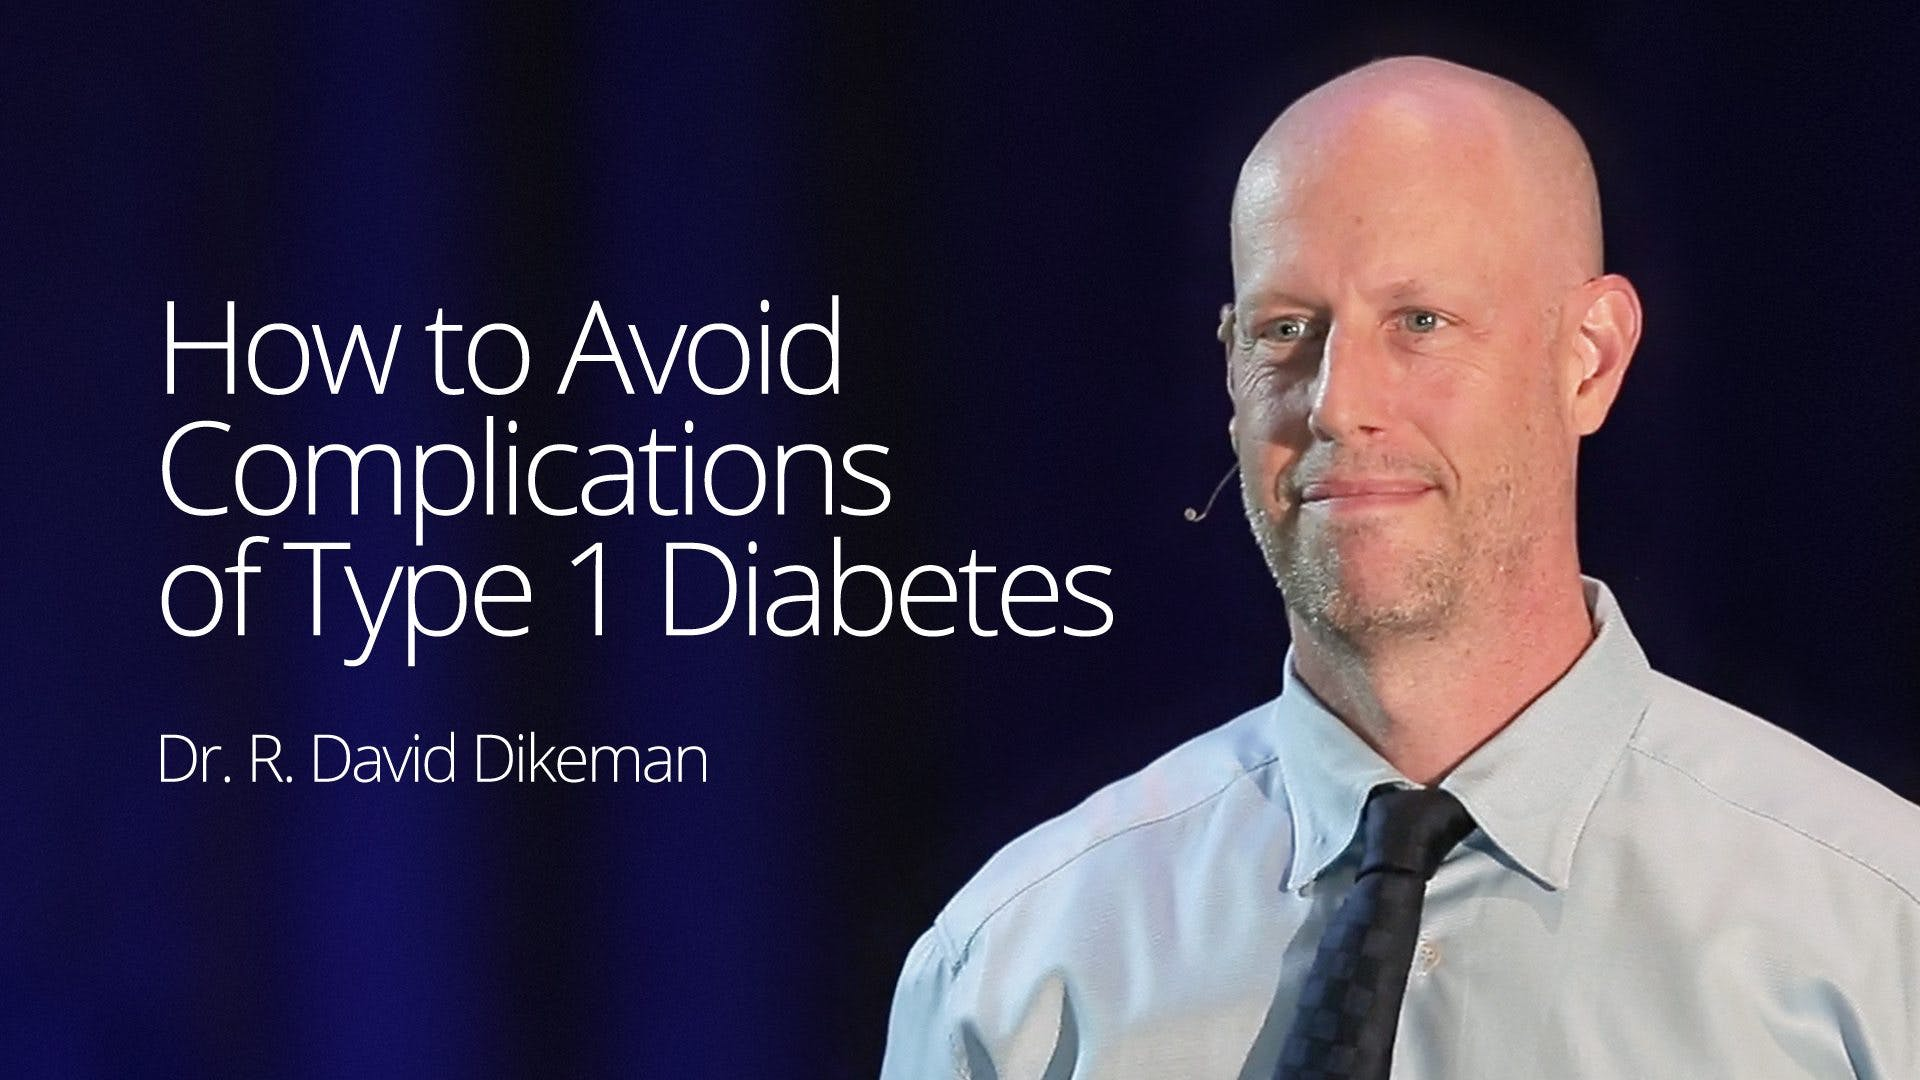 How to Avoid Complications of Type 1 Diabetes – Dr. David Dikeman